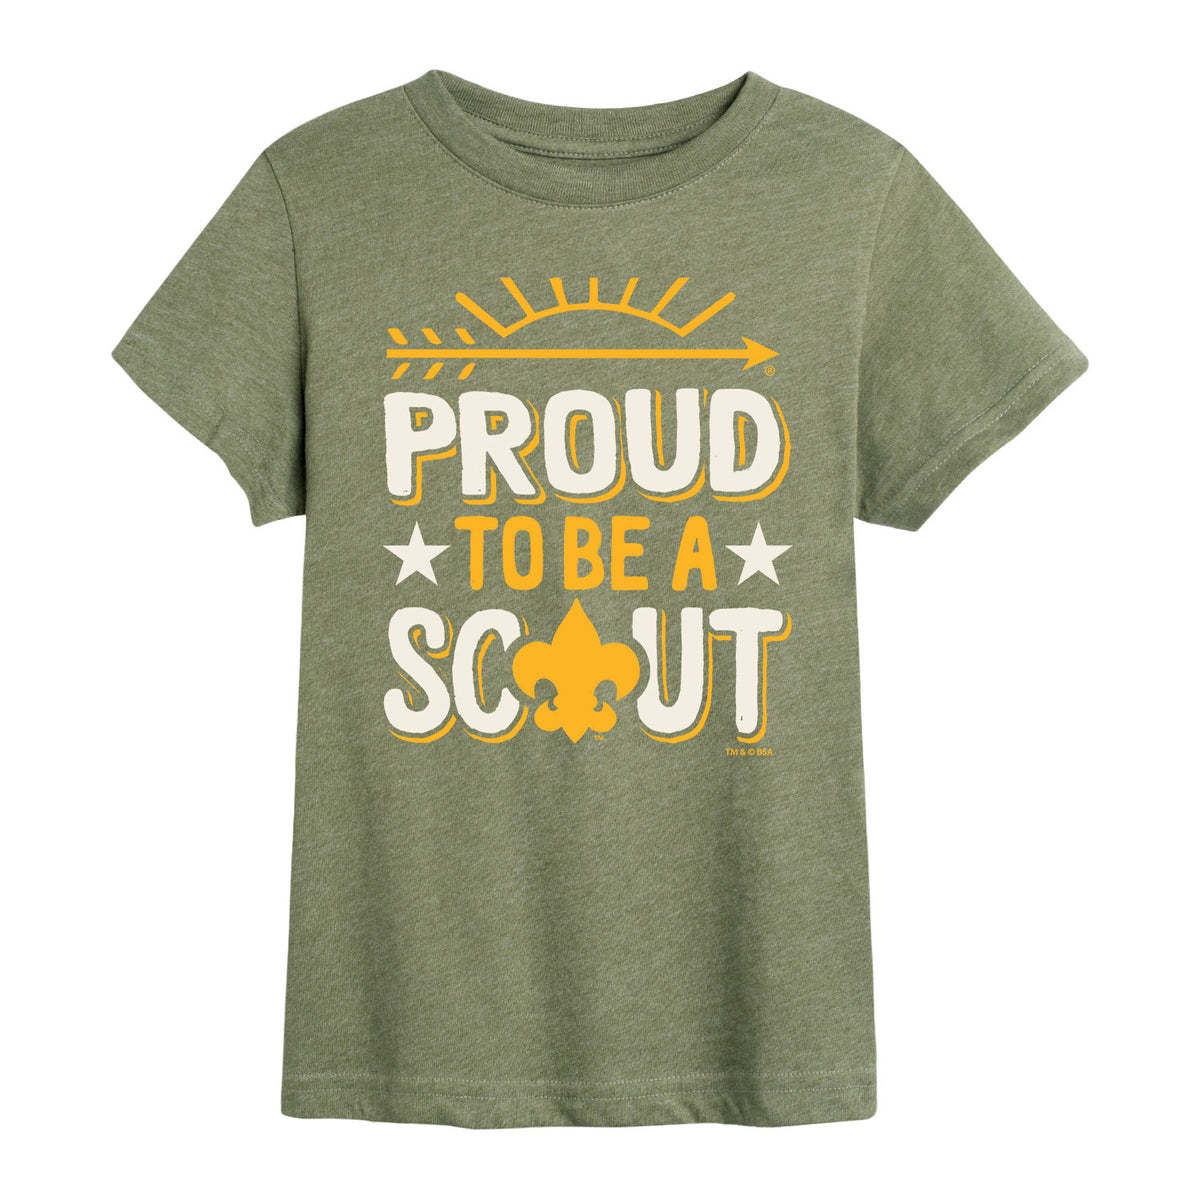 Scouts BSA - Proud To Be A Scout - Youth Short Sleeve T-Shirt